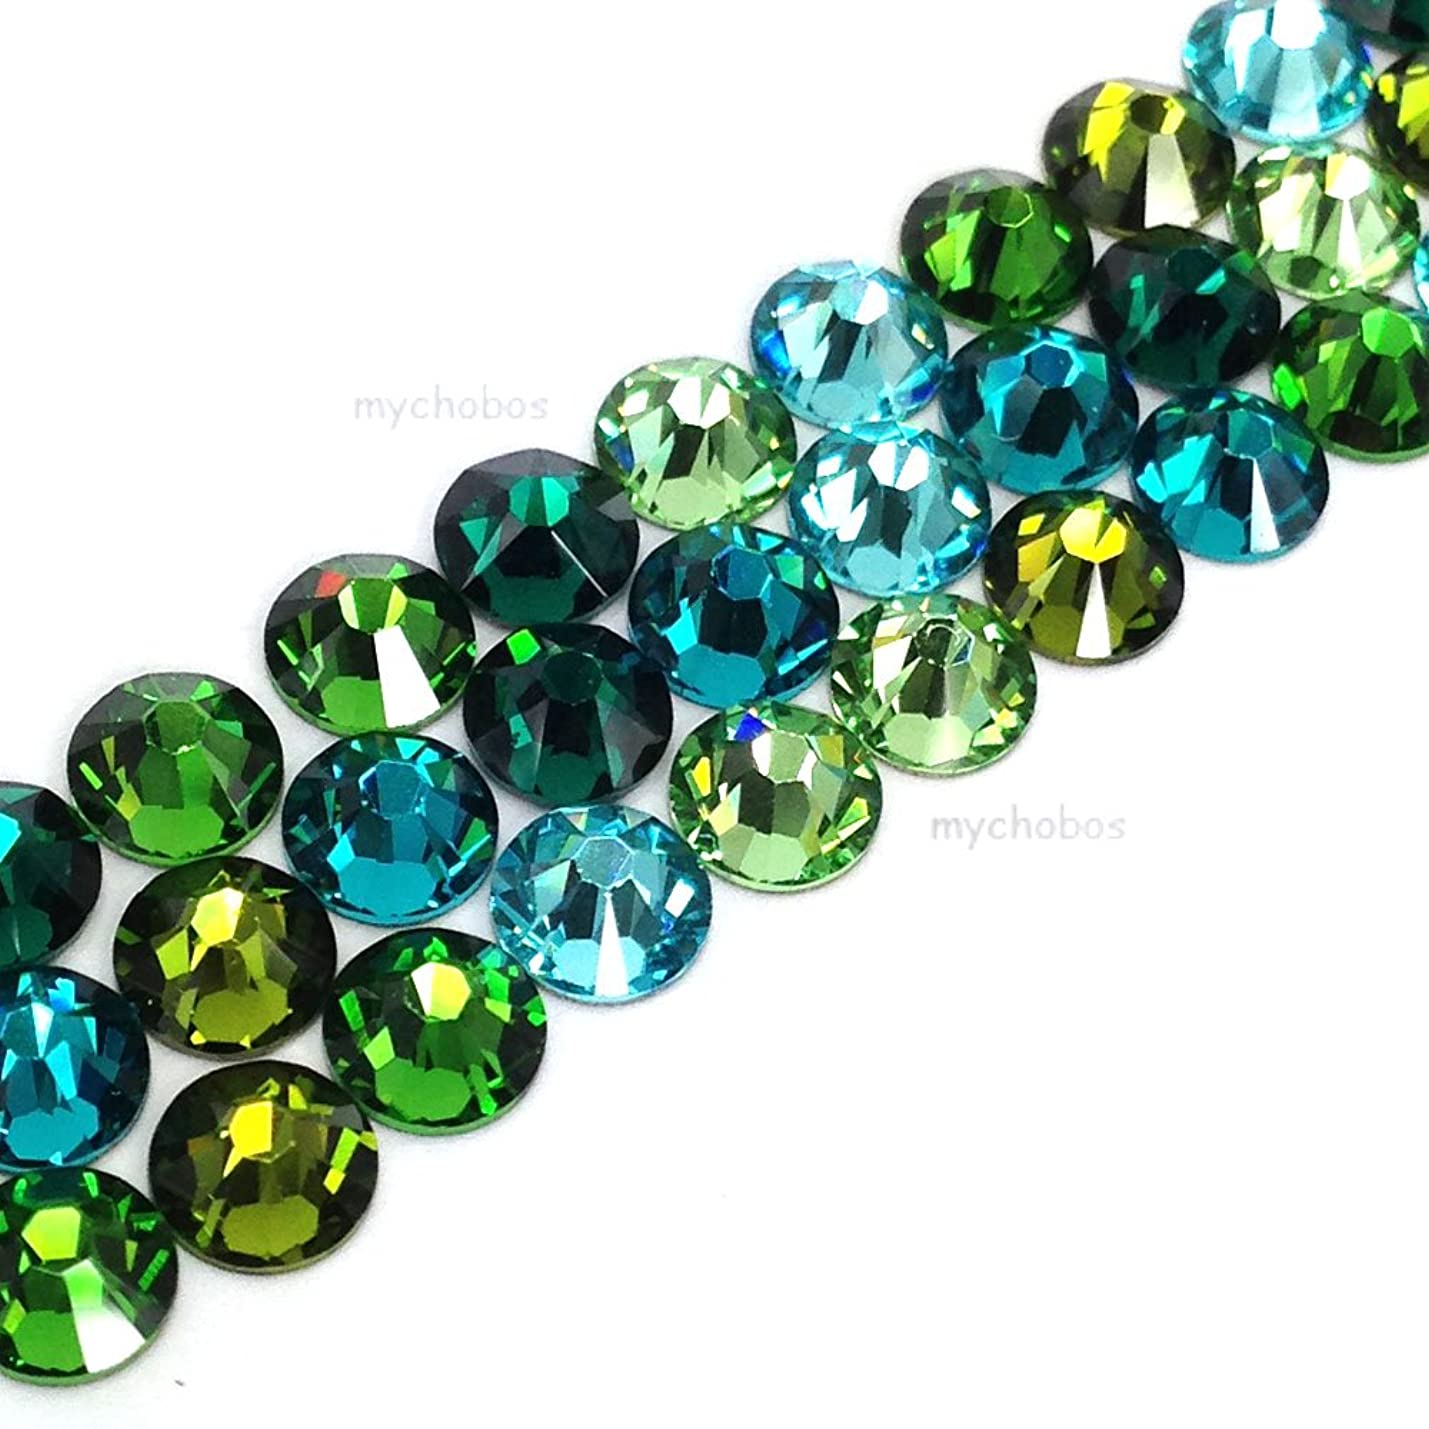 144 Swarovski 2058 Xilion / 2088 Xirius Rose crystal flat backs No-Hotfix rhinestones GREEN & TEAL Colors Mix ss20 (4.7mm) mpvbekkfglgem308